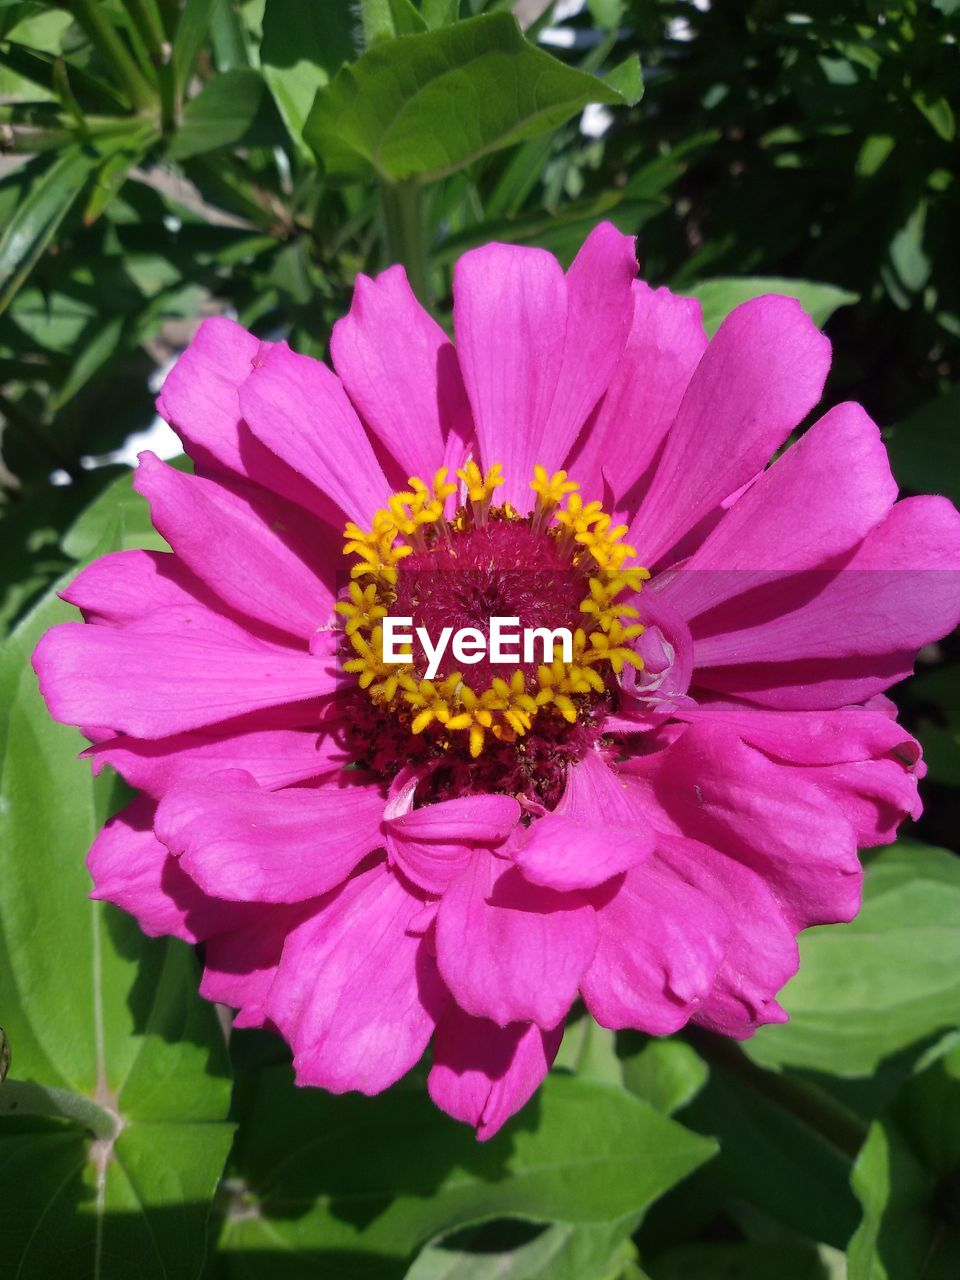 flower, petal, beauty in nature, nature, fragility, flower head, growth, freshness, blooming, plant, pollen, no people, outdoors, pink color, day, leaf, zinnia, close-up